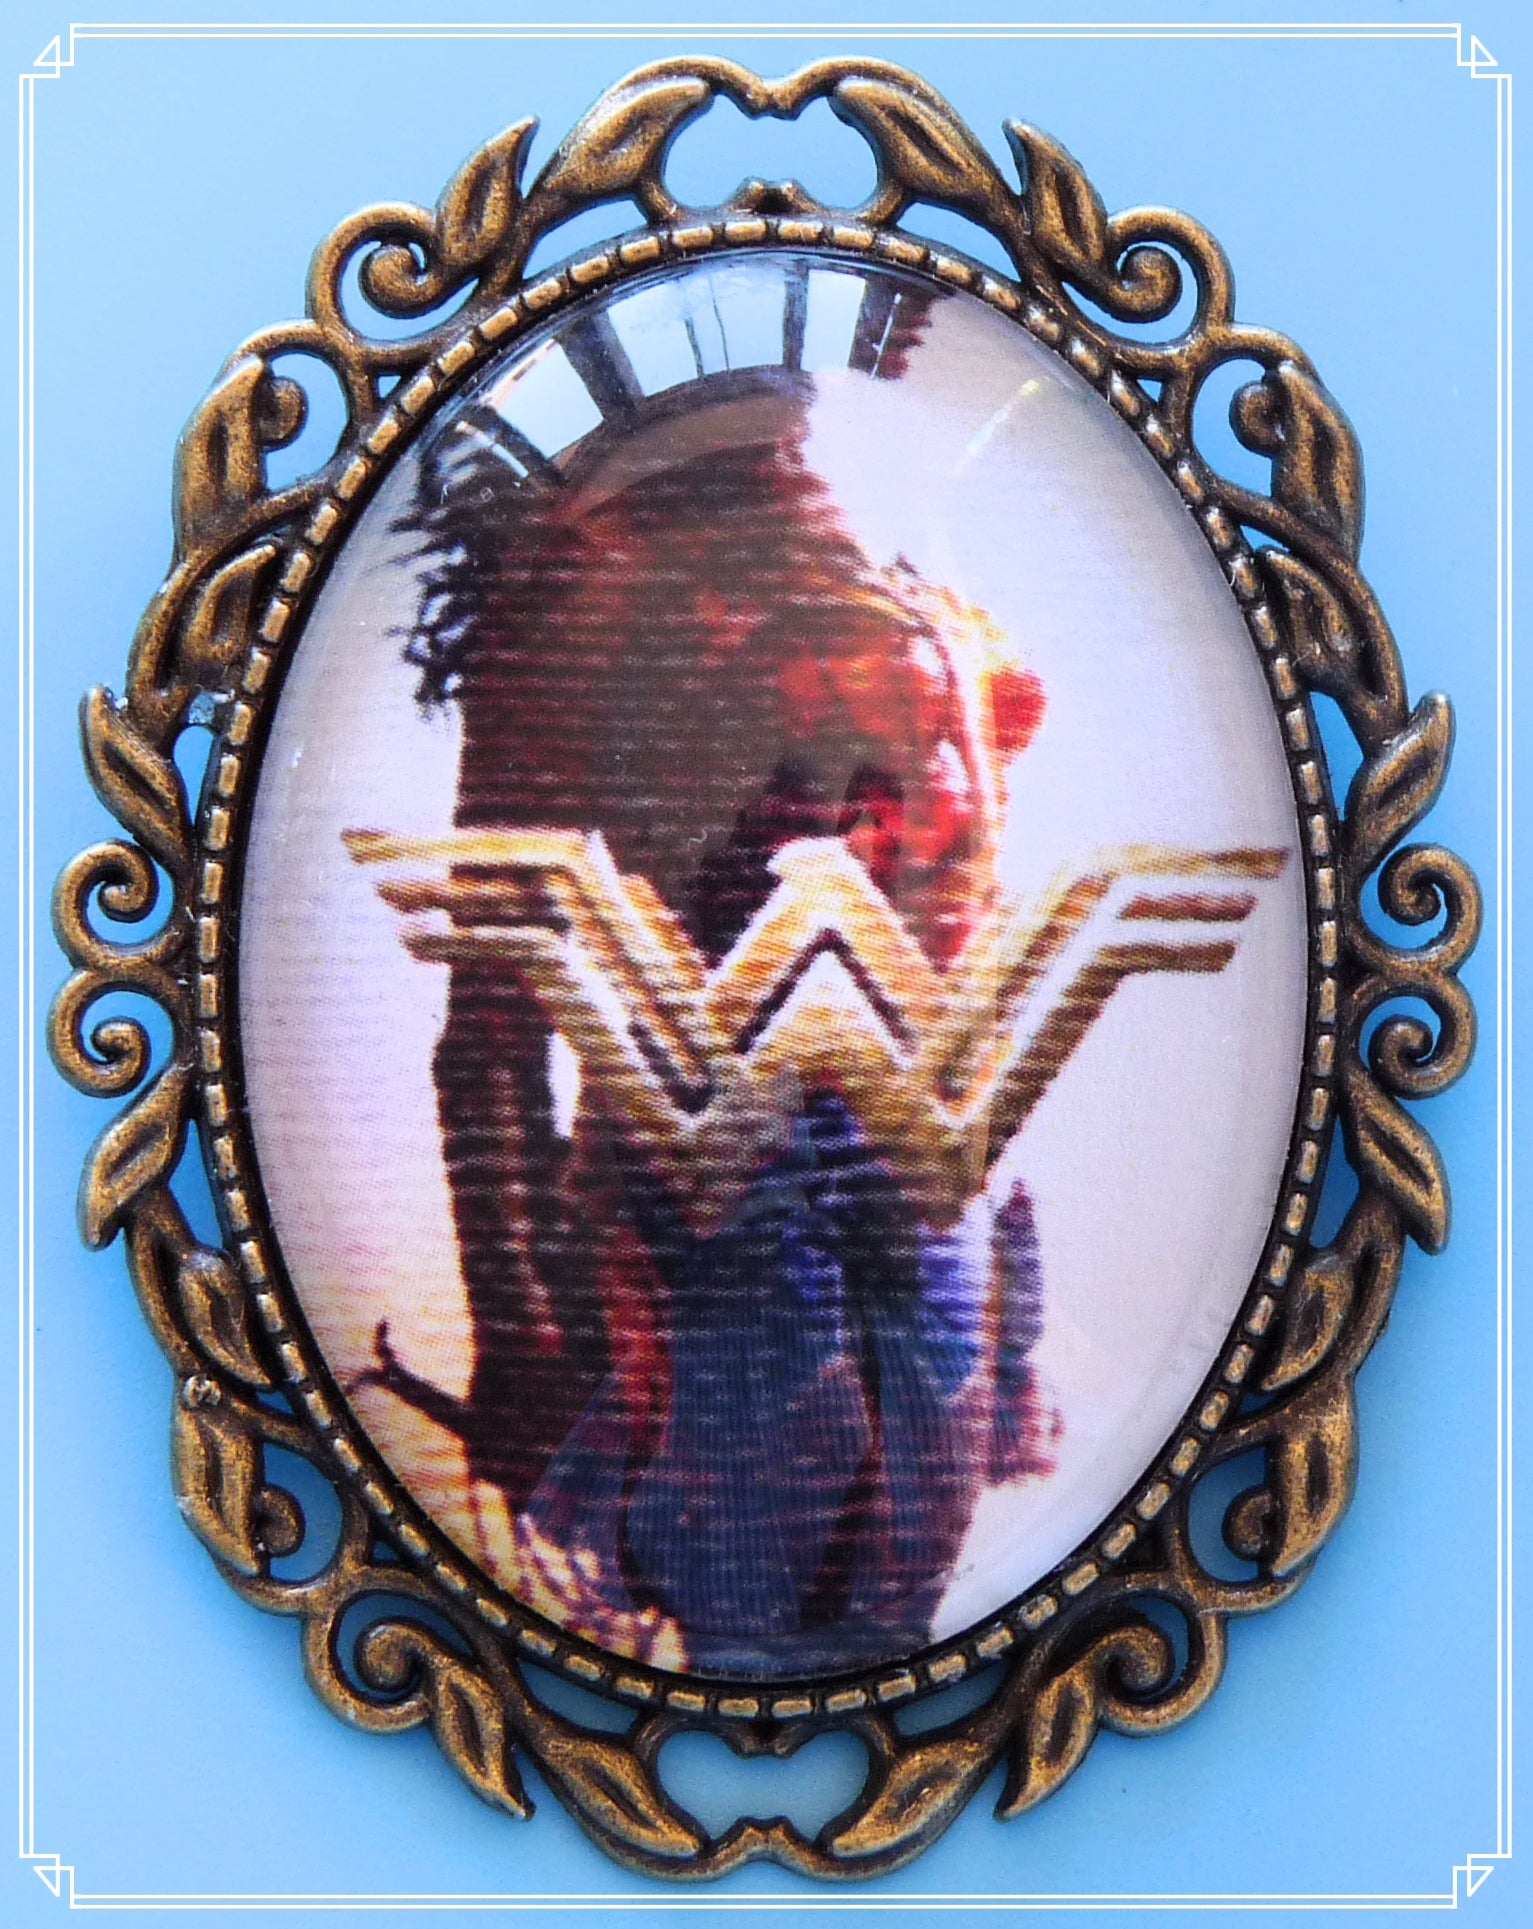 Inspired by the new Wonder Woman movie I created this brooch and called it Diana of Themyscira. The image has a texture similar to canvas or linen.